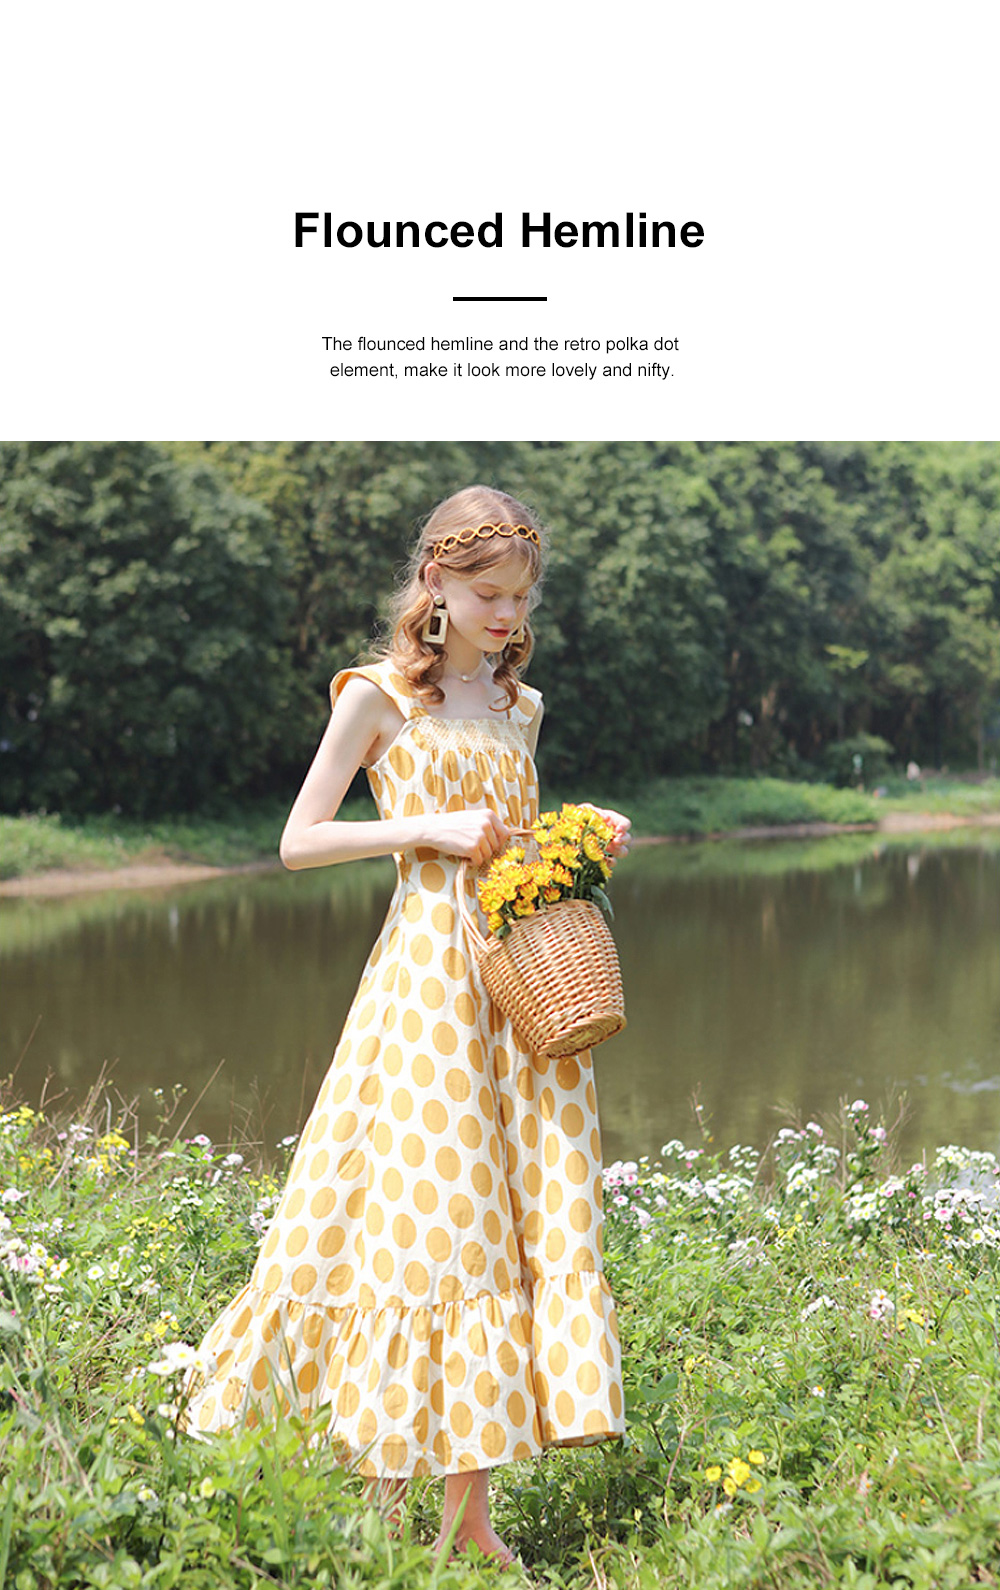 French Style Women's Casual Polka Dot Sleeveless Long Dress High Waist and Wide Boat Neck 1